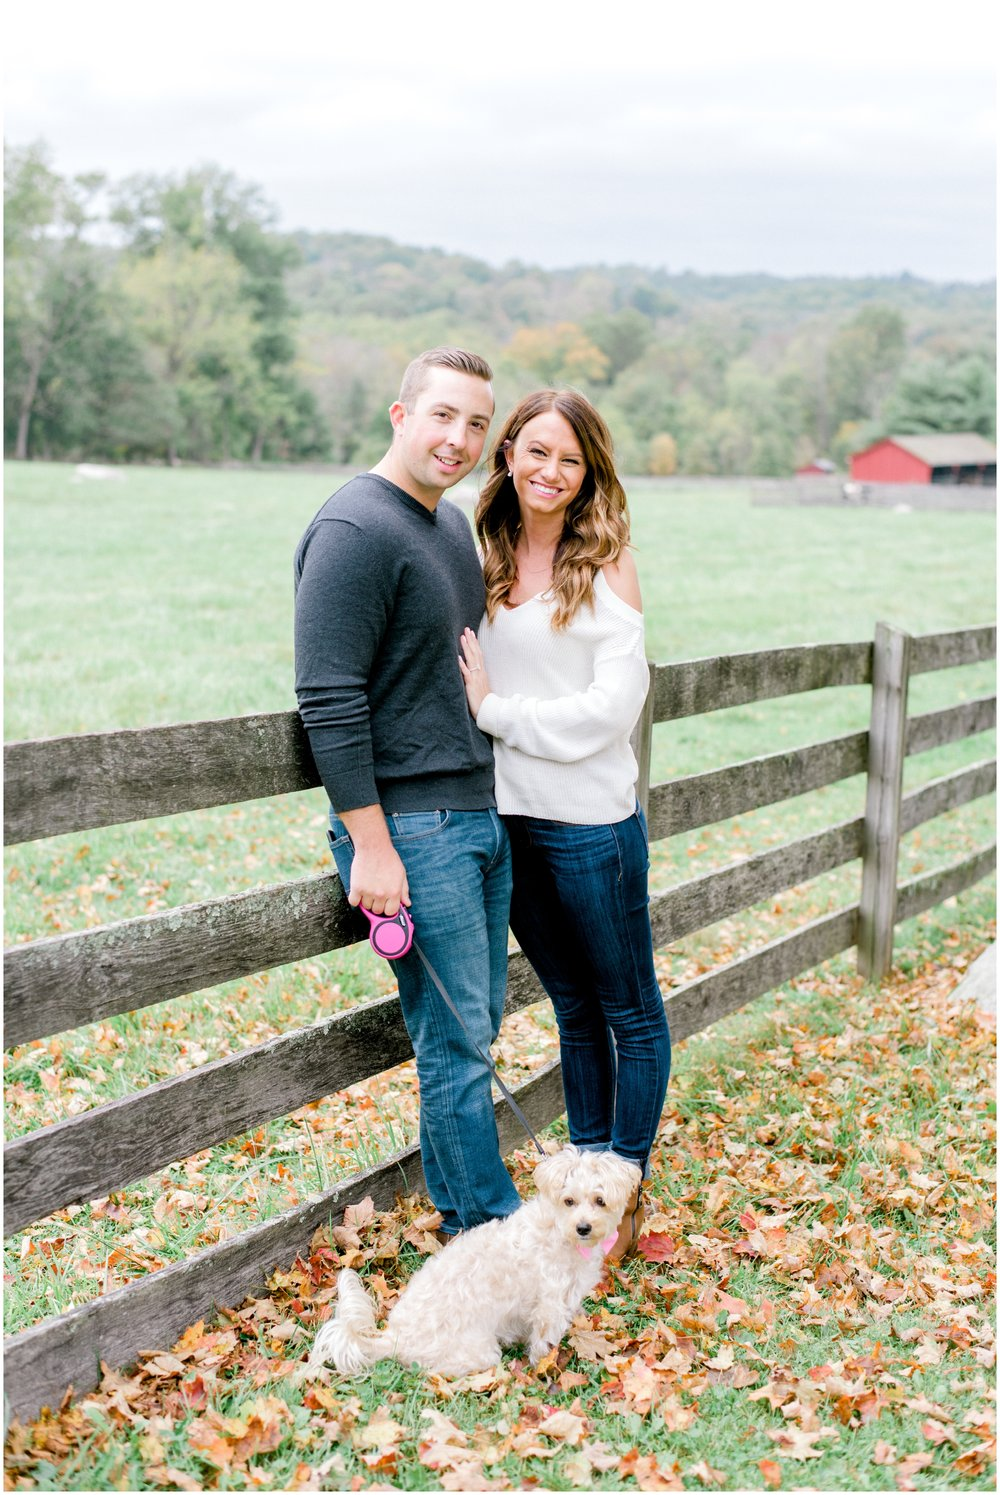 Fall Springton Manor Farm Engagement Session - Krista Brackin Photography_0016.jpg